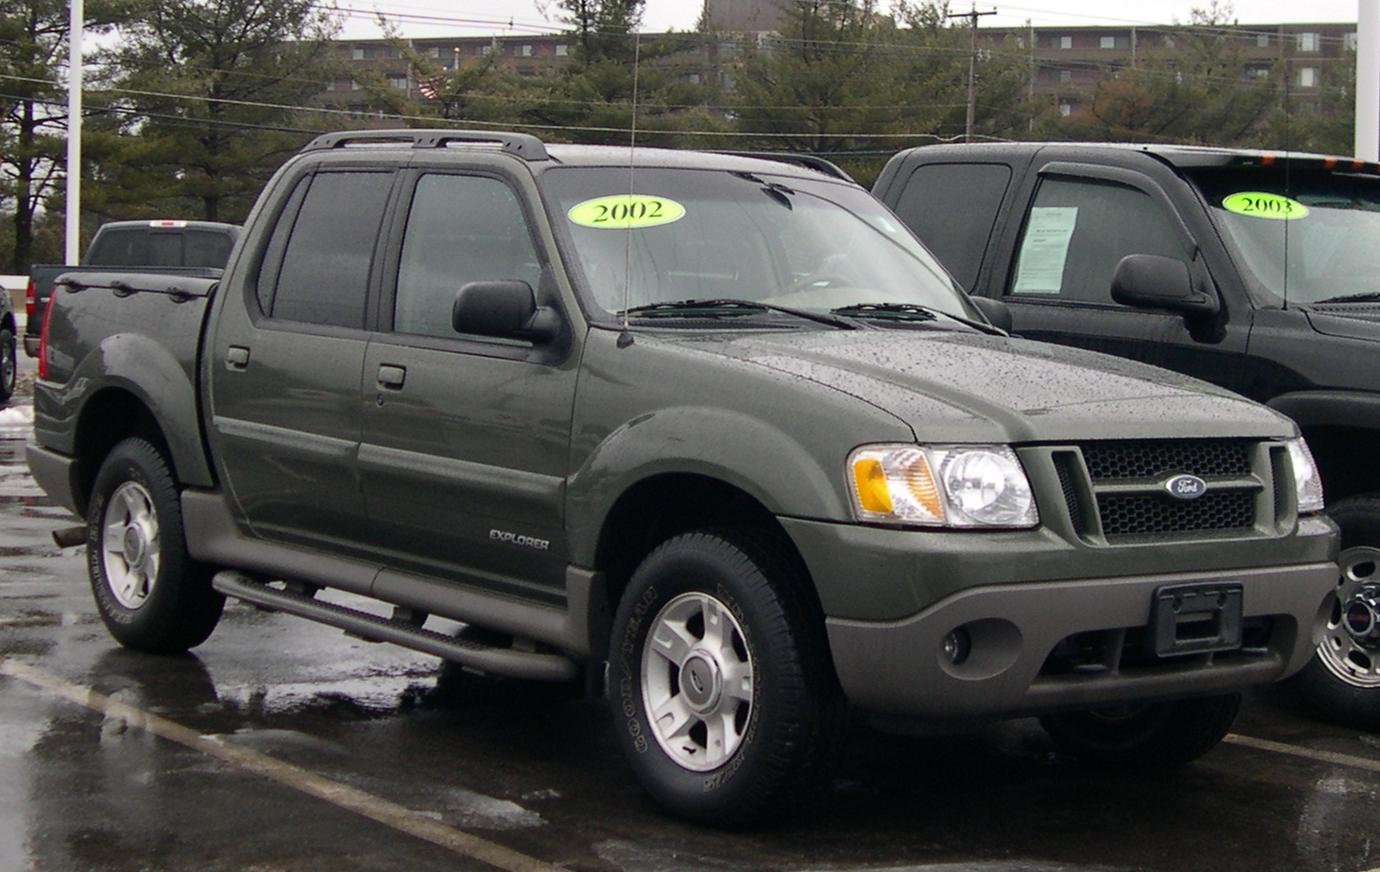 2005 ford explorer sport trac image 3